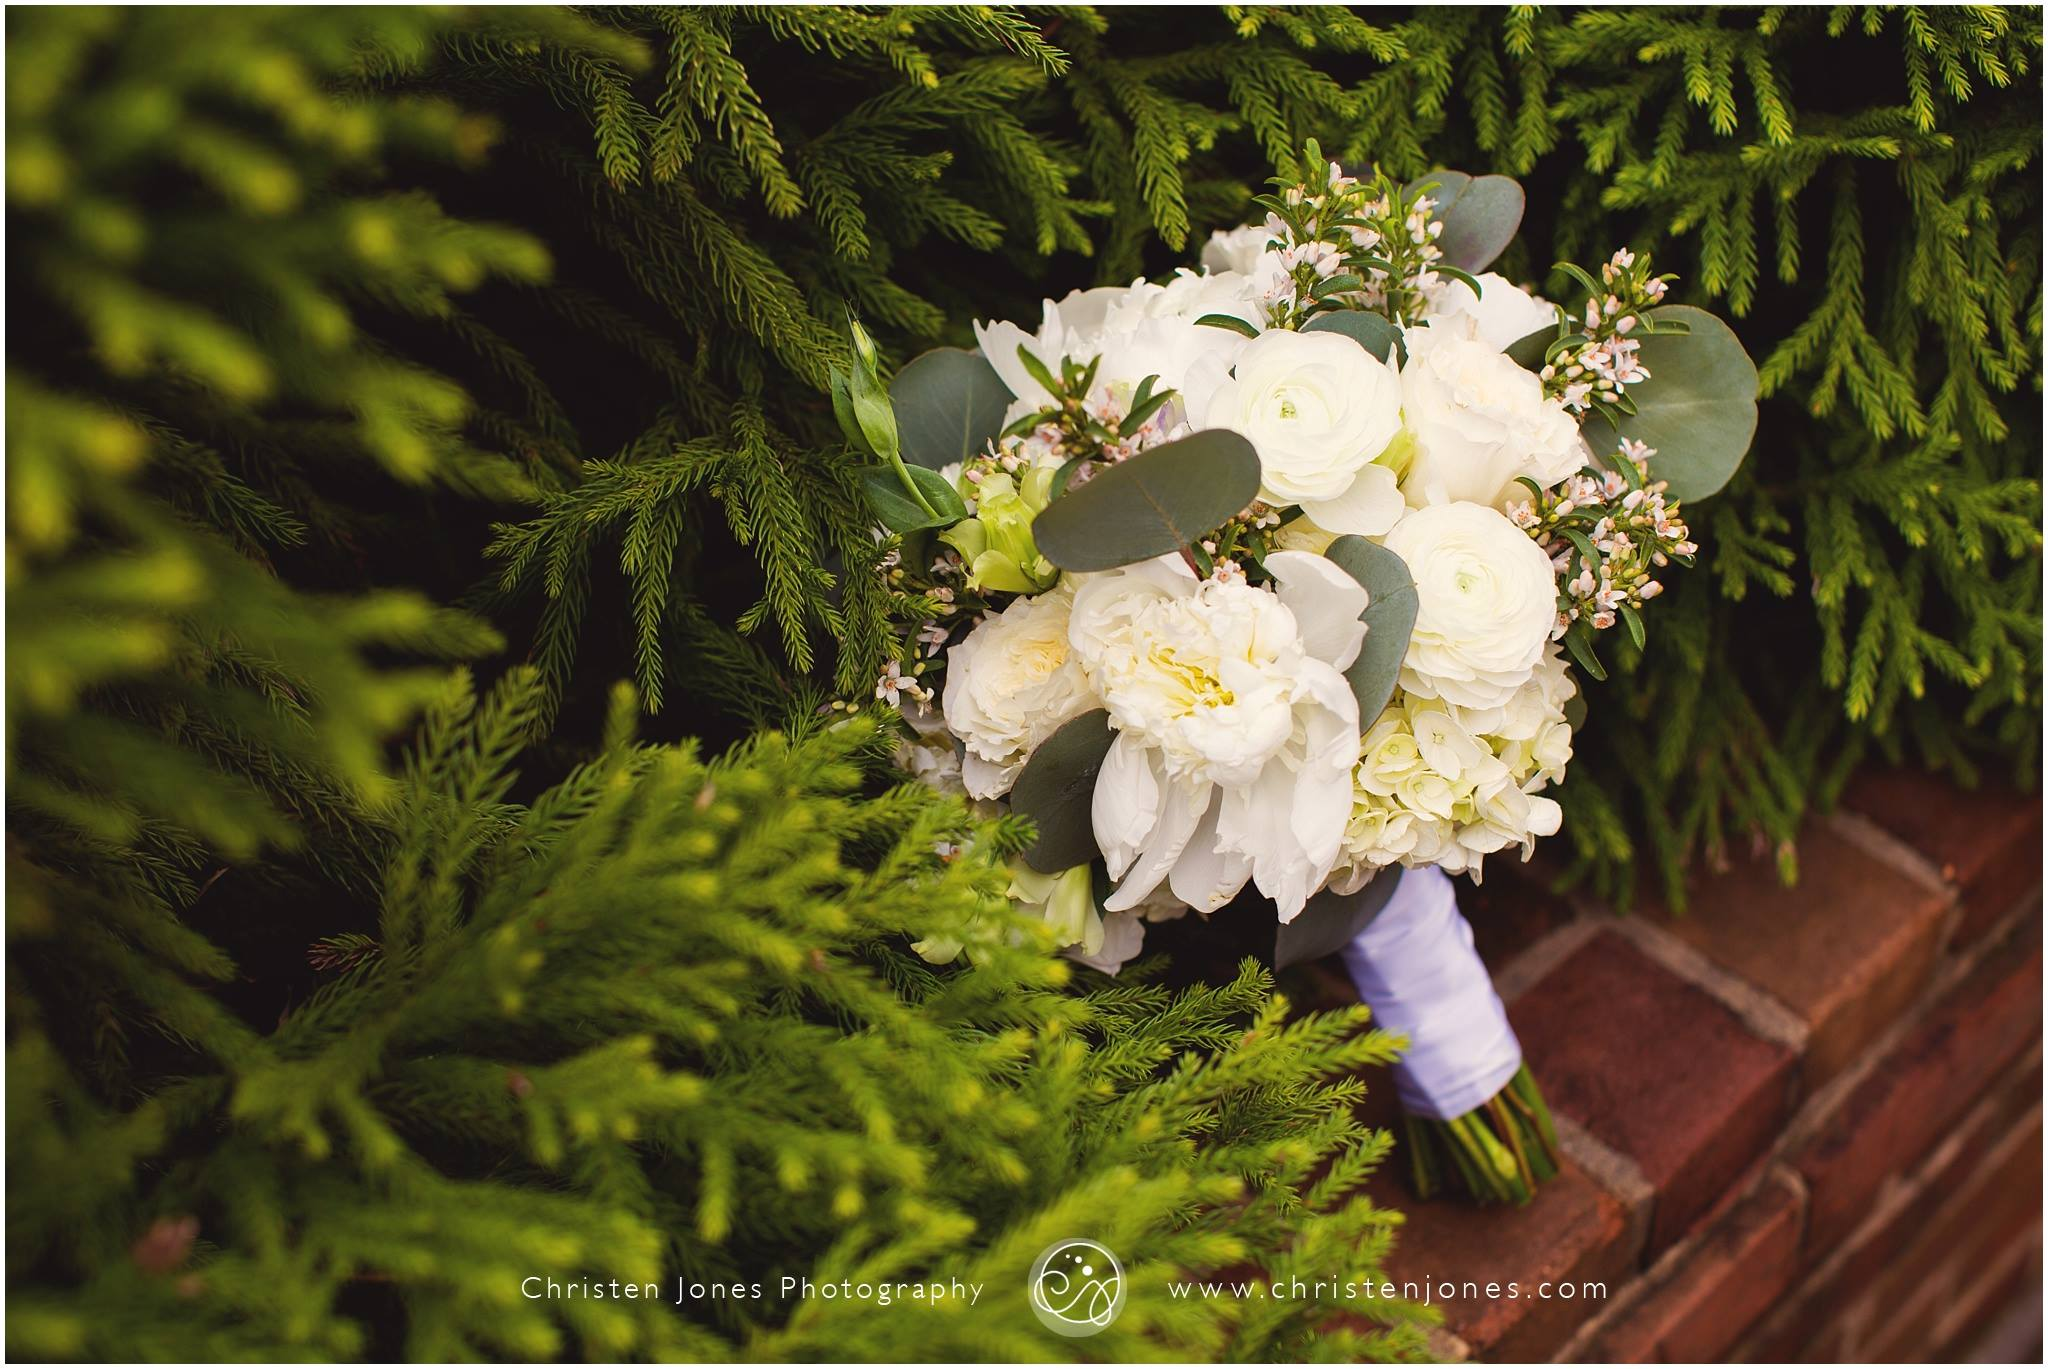 memphis photographer, memphis florist, Ashlye McCorick Design, wedding florals, flowers, bouquets